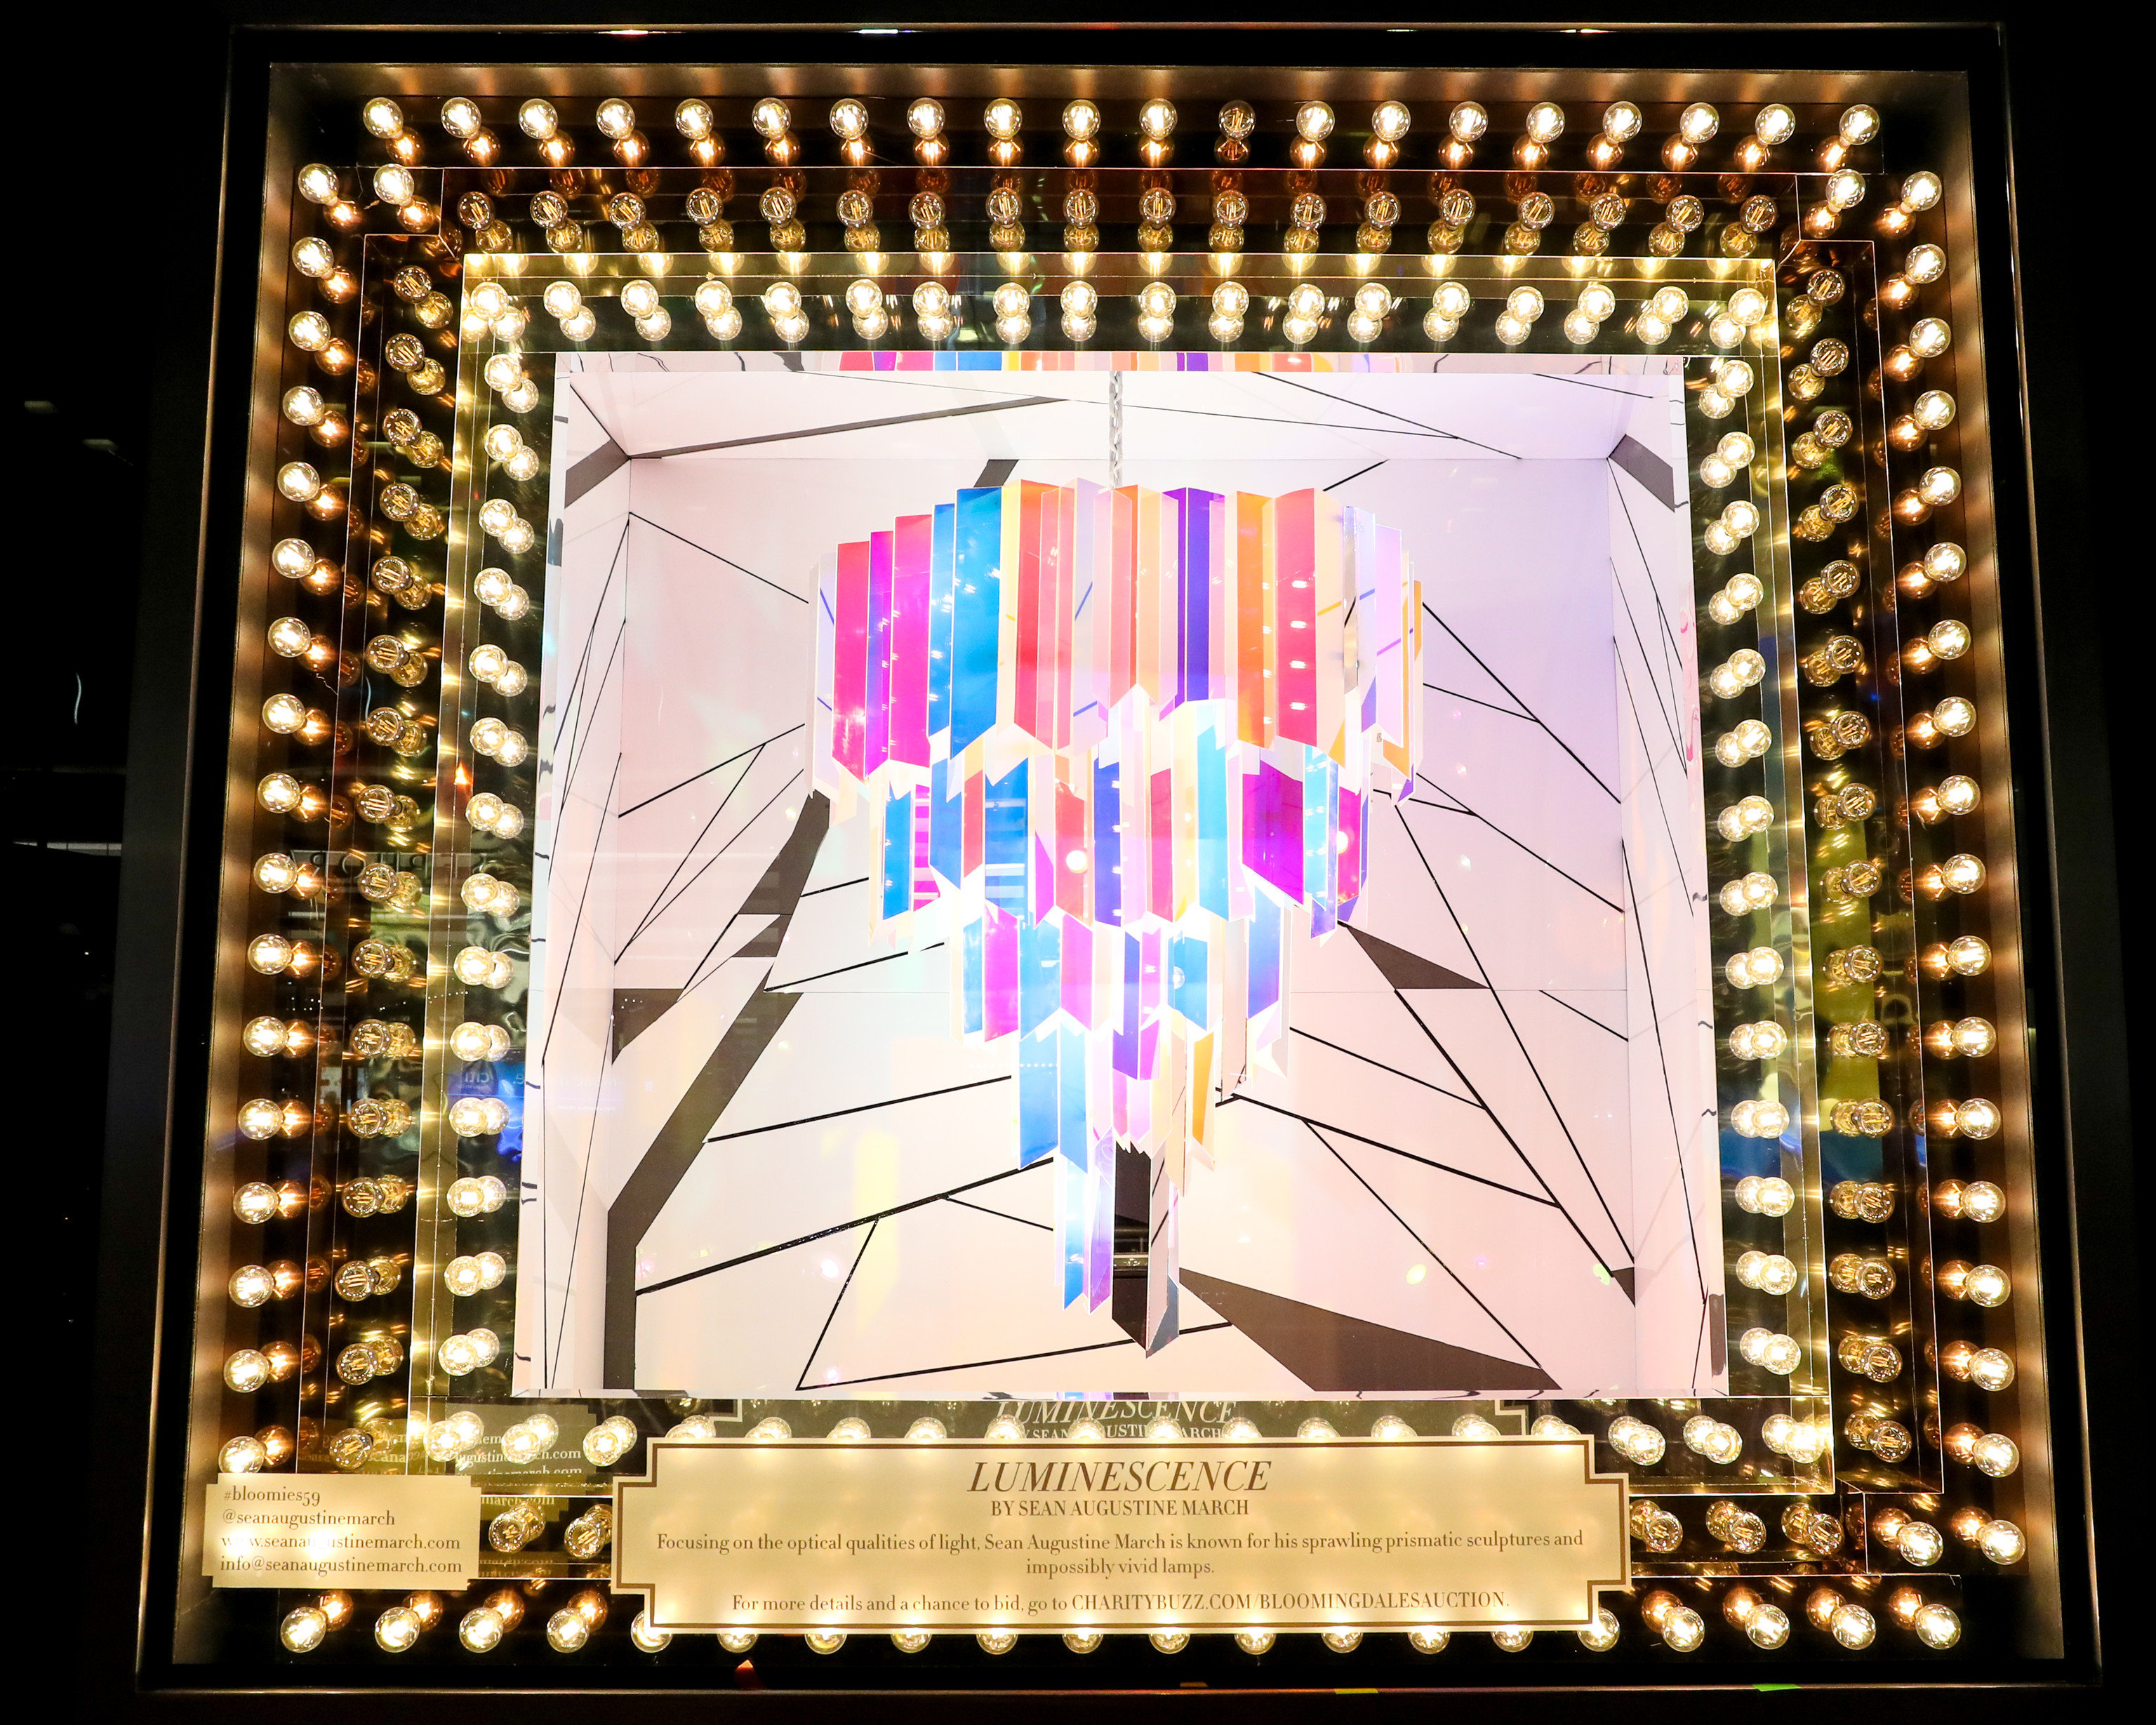 Trip Ideas table stained glass window glass picture frame art symmetry signage material